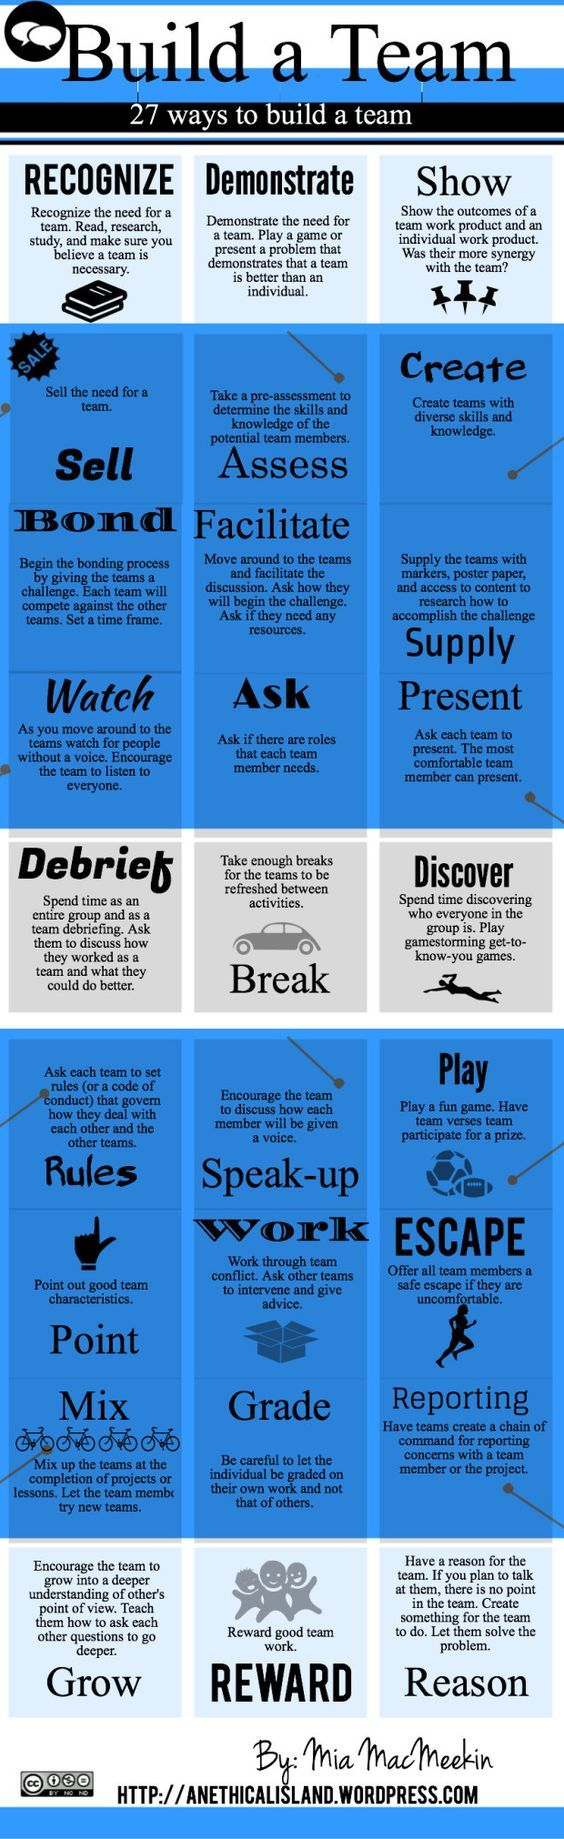 8 best images about project management on pinterest for Team x architecture